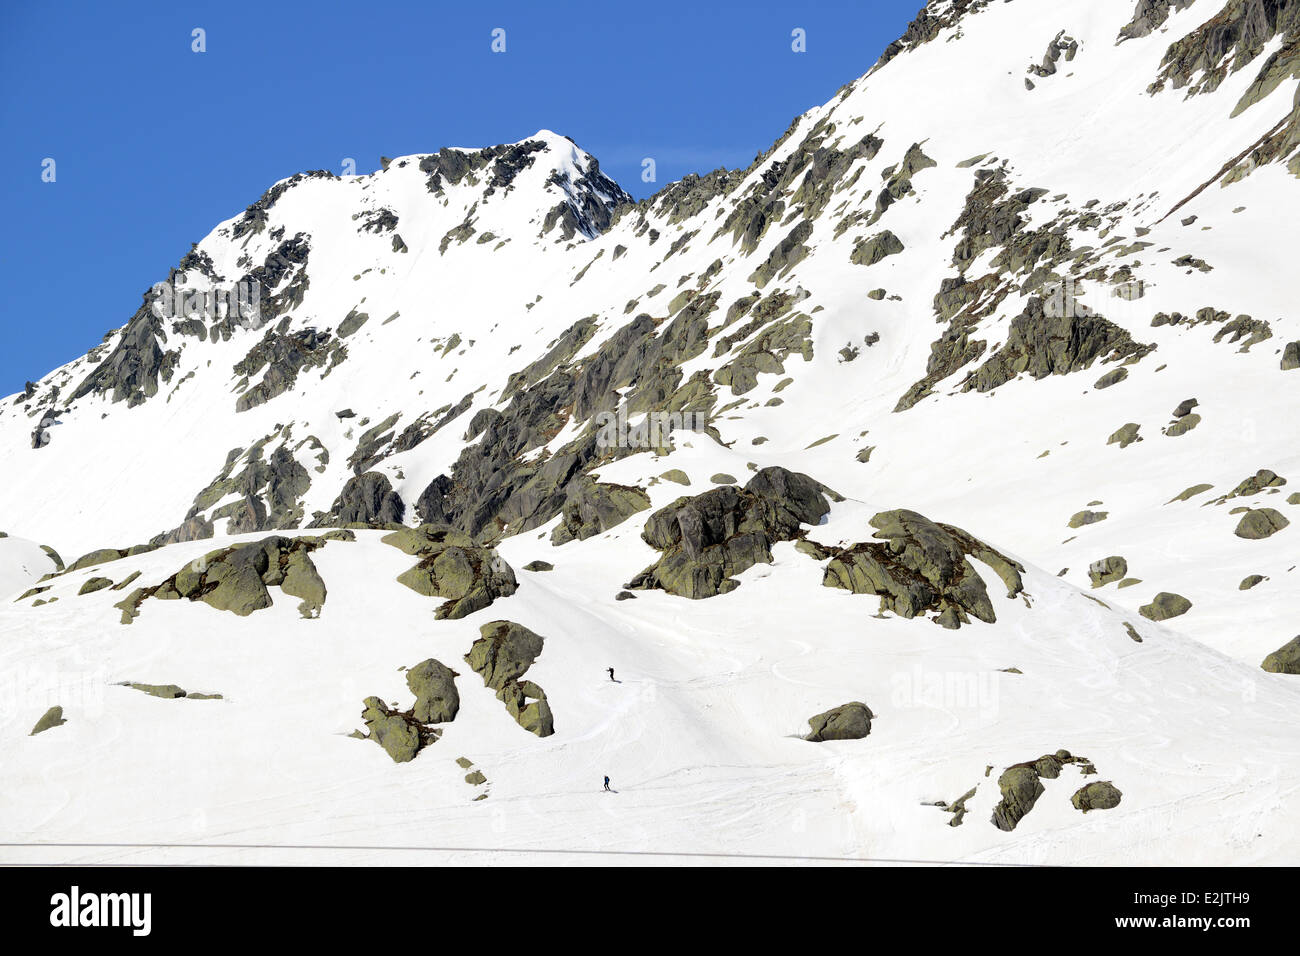 Skiiers skiing off piste on late snow in May on The Gotthard Pass or St. Gotthard Pass (Italian: Passo del San Gottardo) - Stock Image